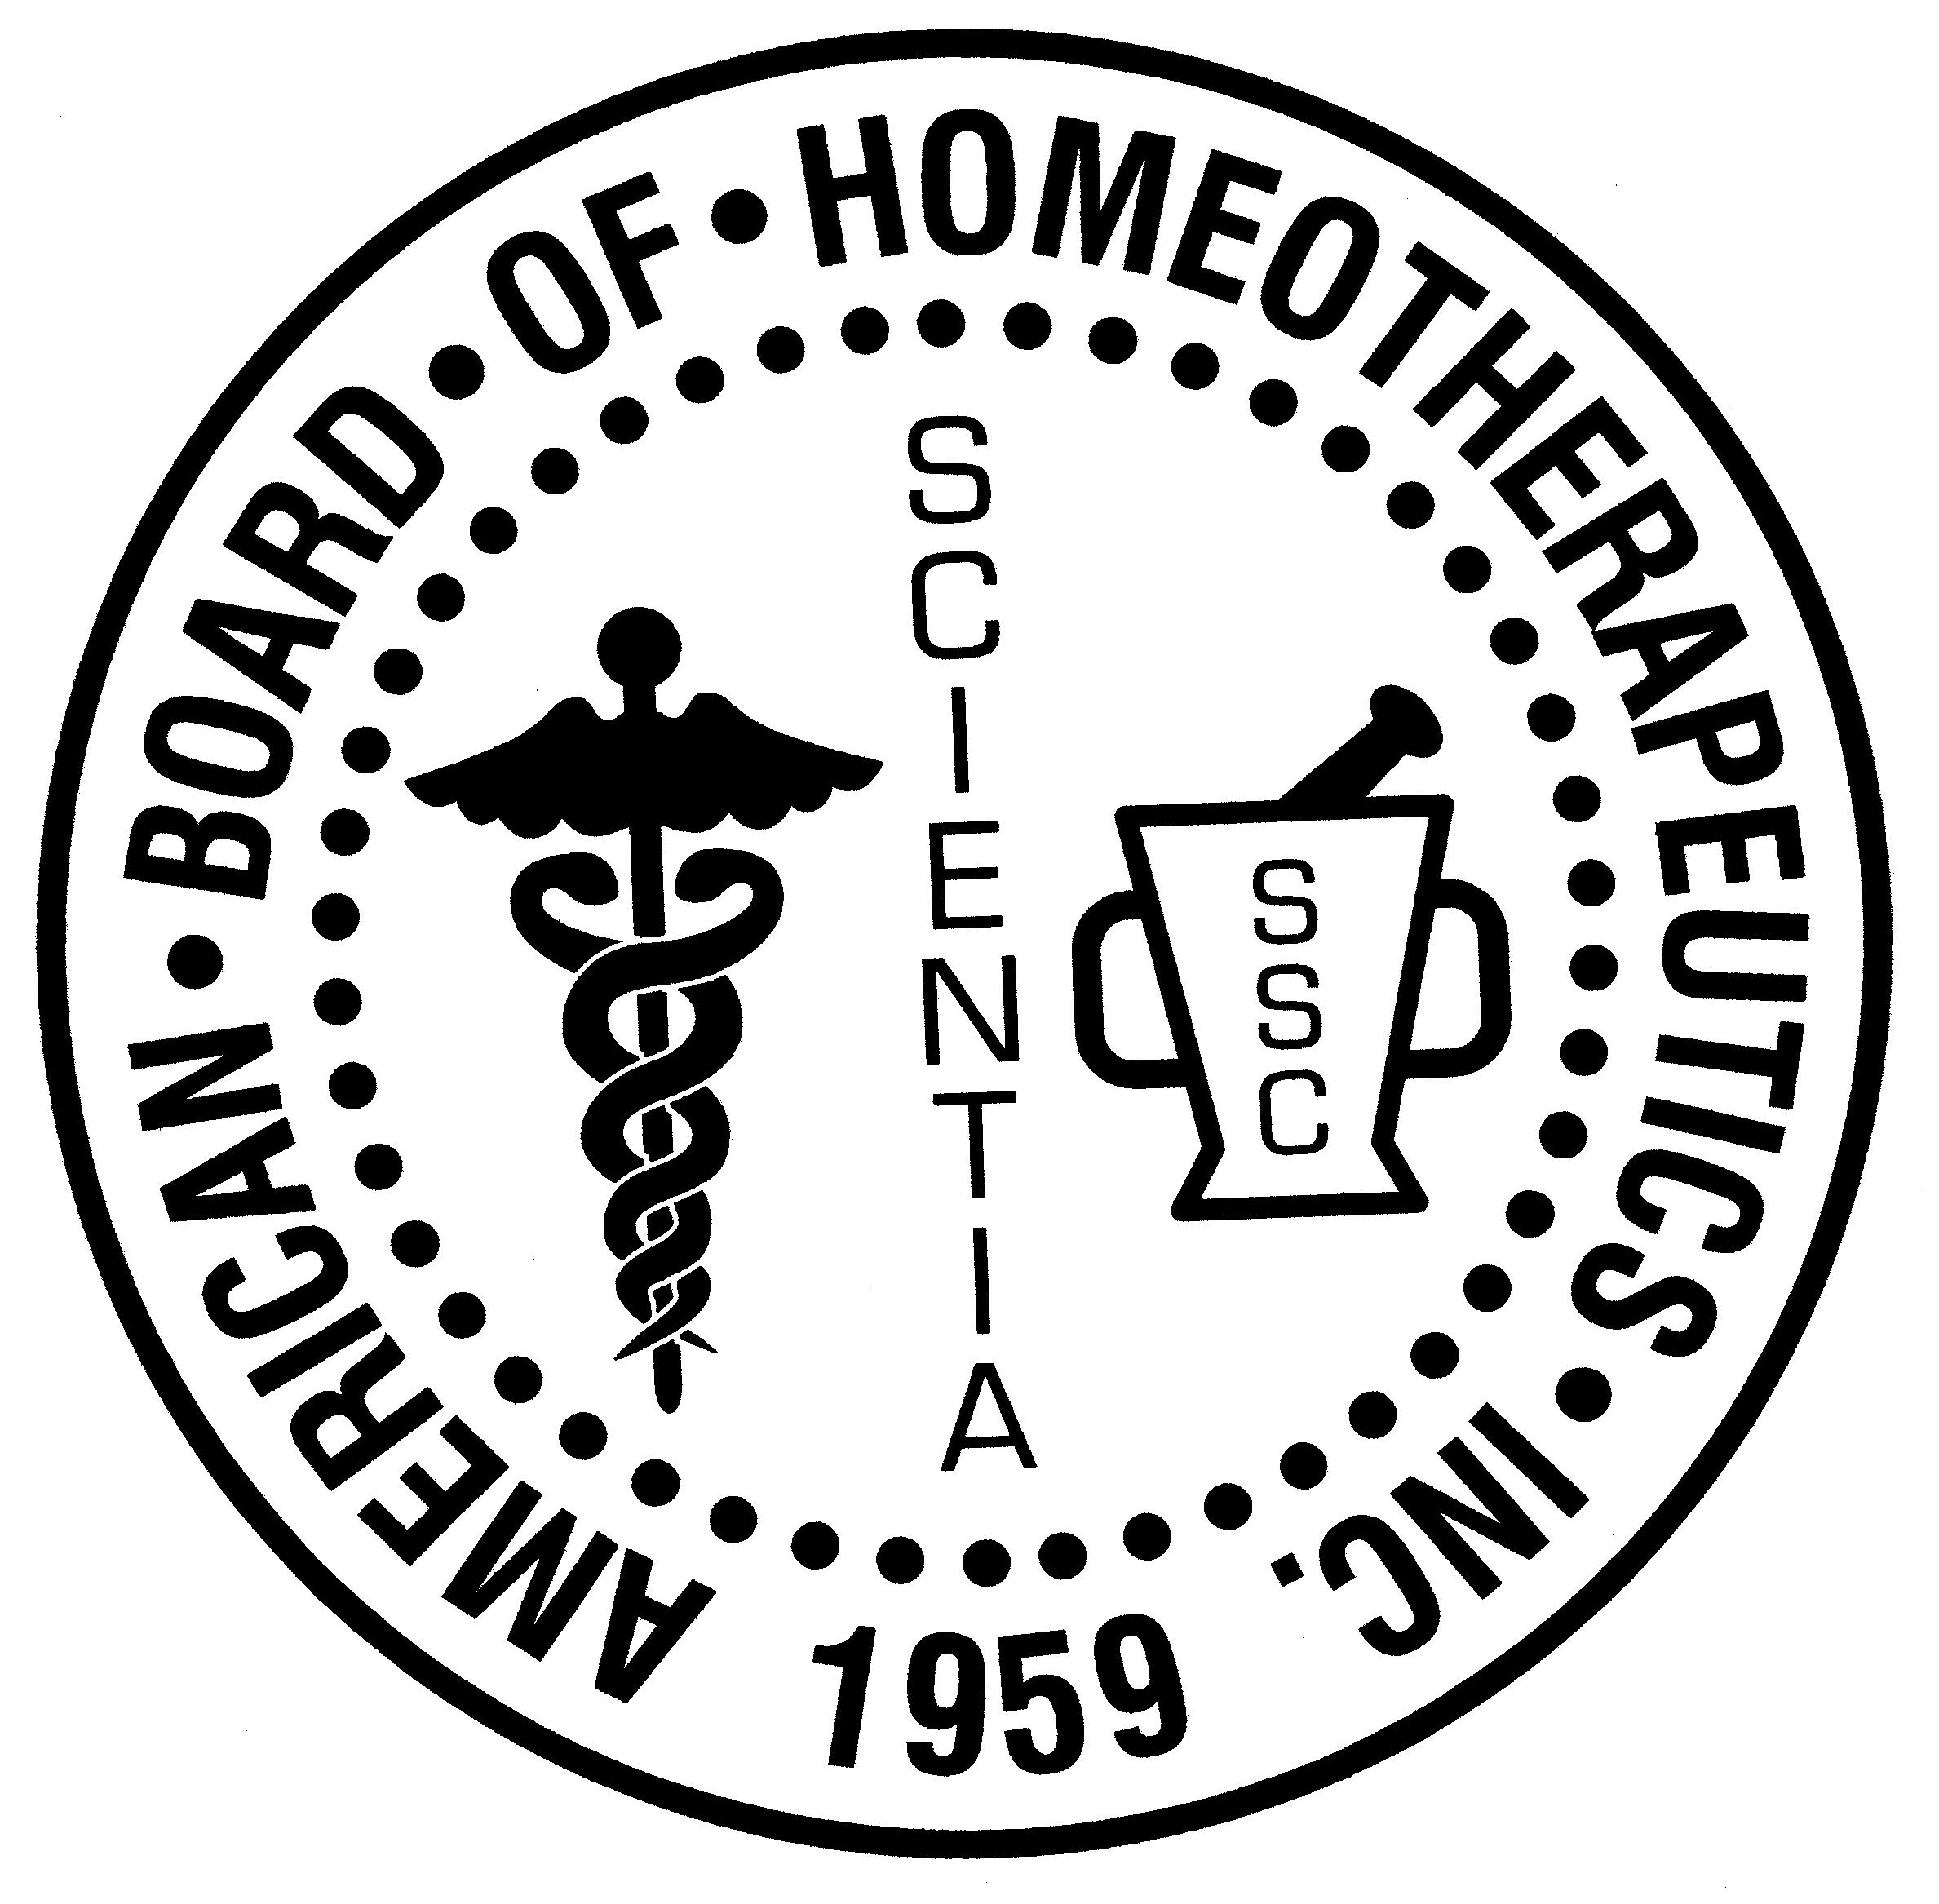 American institute of homeopathy certification board certified d homeopathic physicians 1betcityfo Images